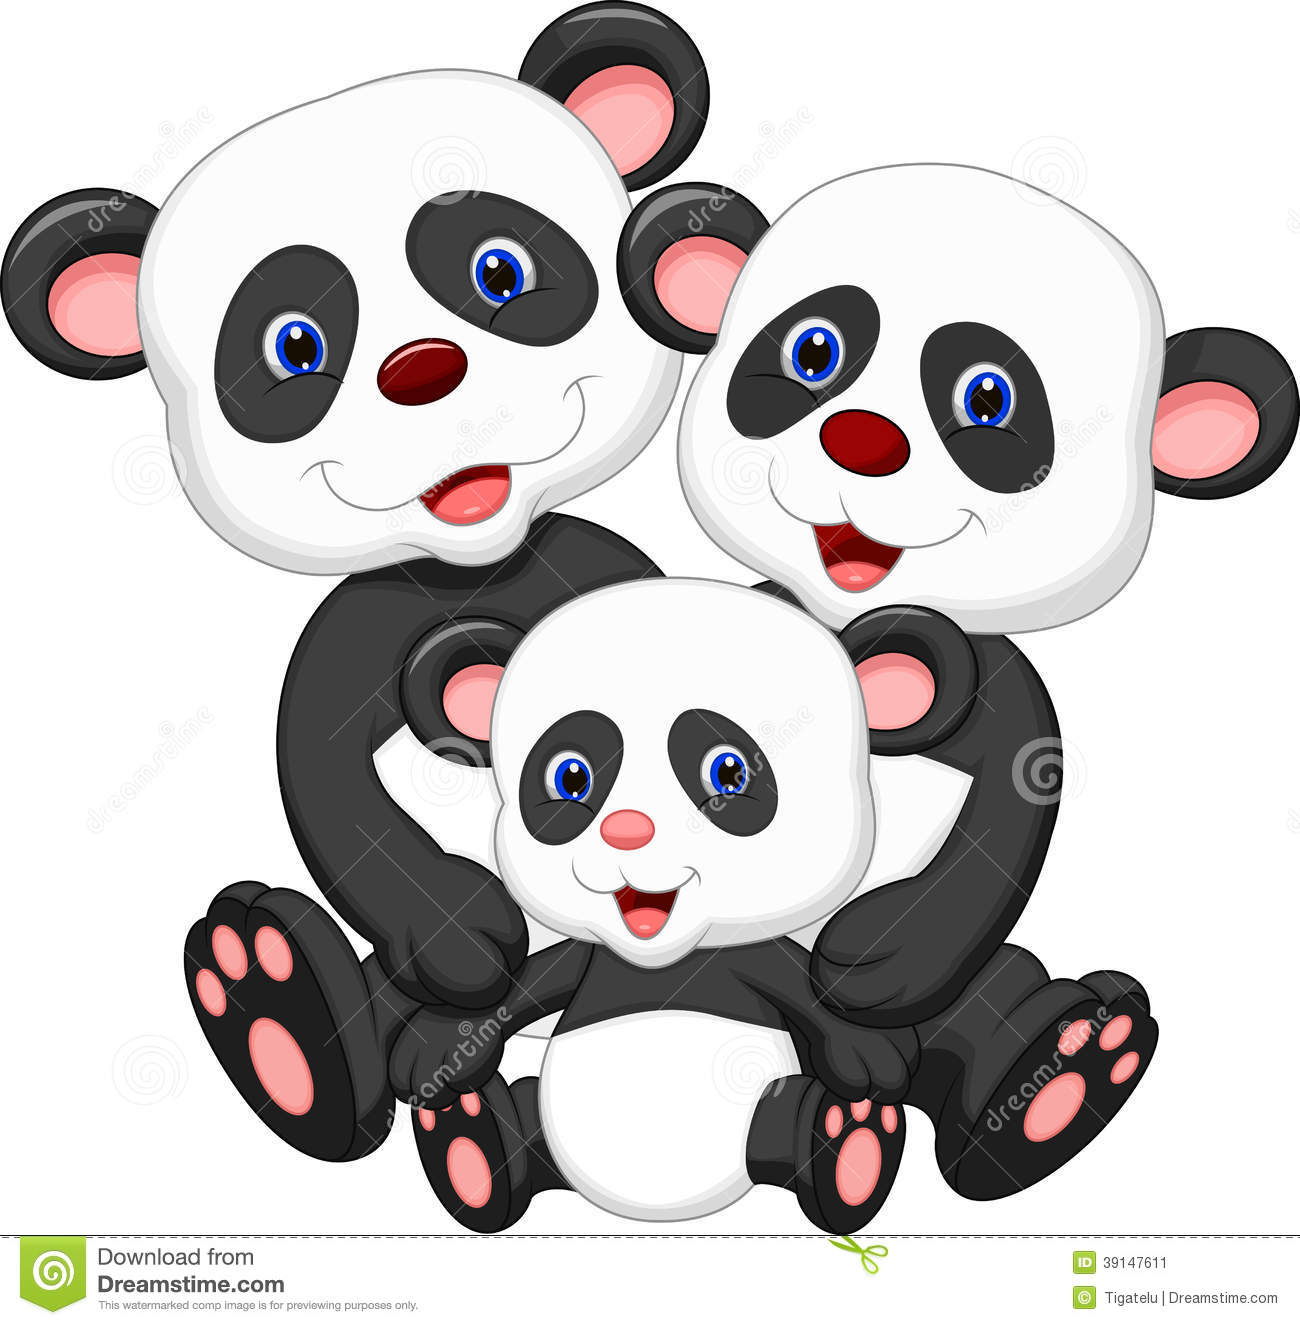 Panda Bear Family Cartoon Stock Vector - Image: 39147611